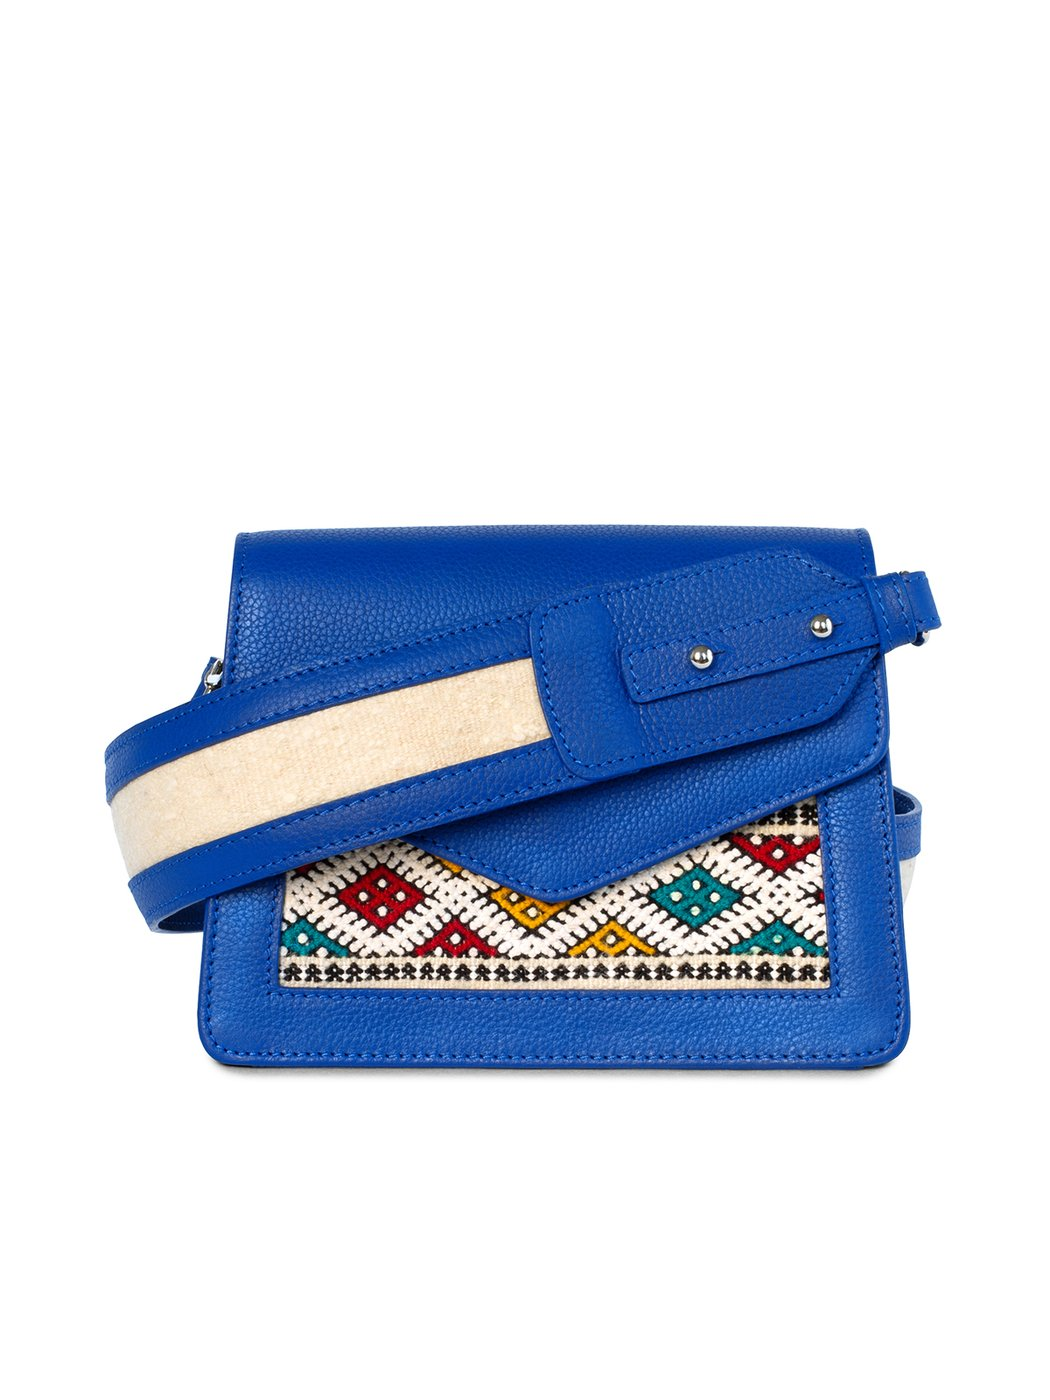 Mini handbag double compartment with shoulder strap Blue edition